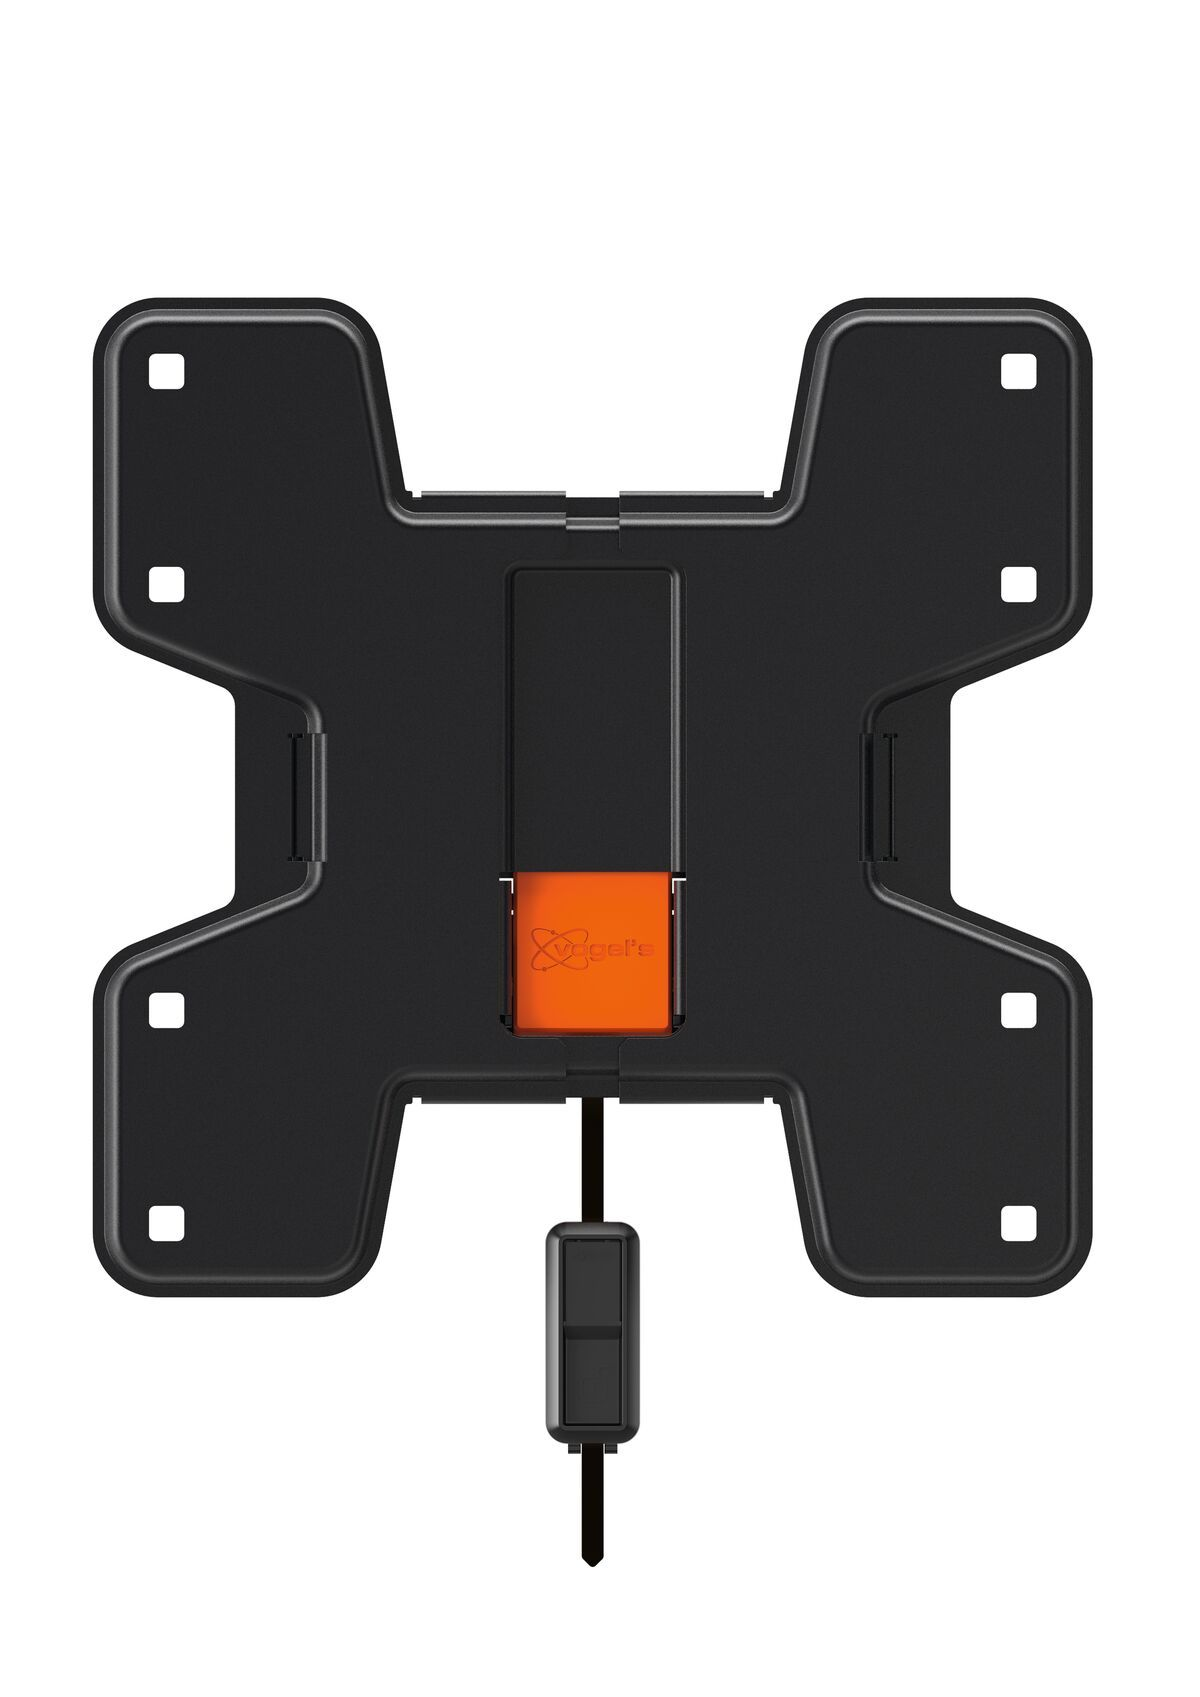 Vogel's WALL 2105 Fixed TV Wall Mount - Suitable for 19 up to 40 inch TVs up to 15 kg - Front view